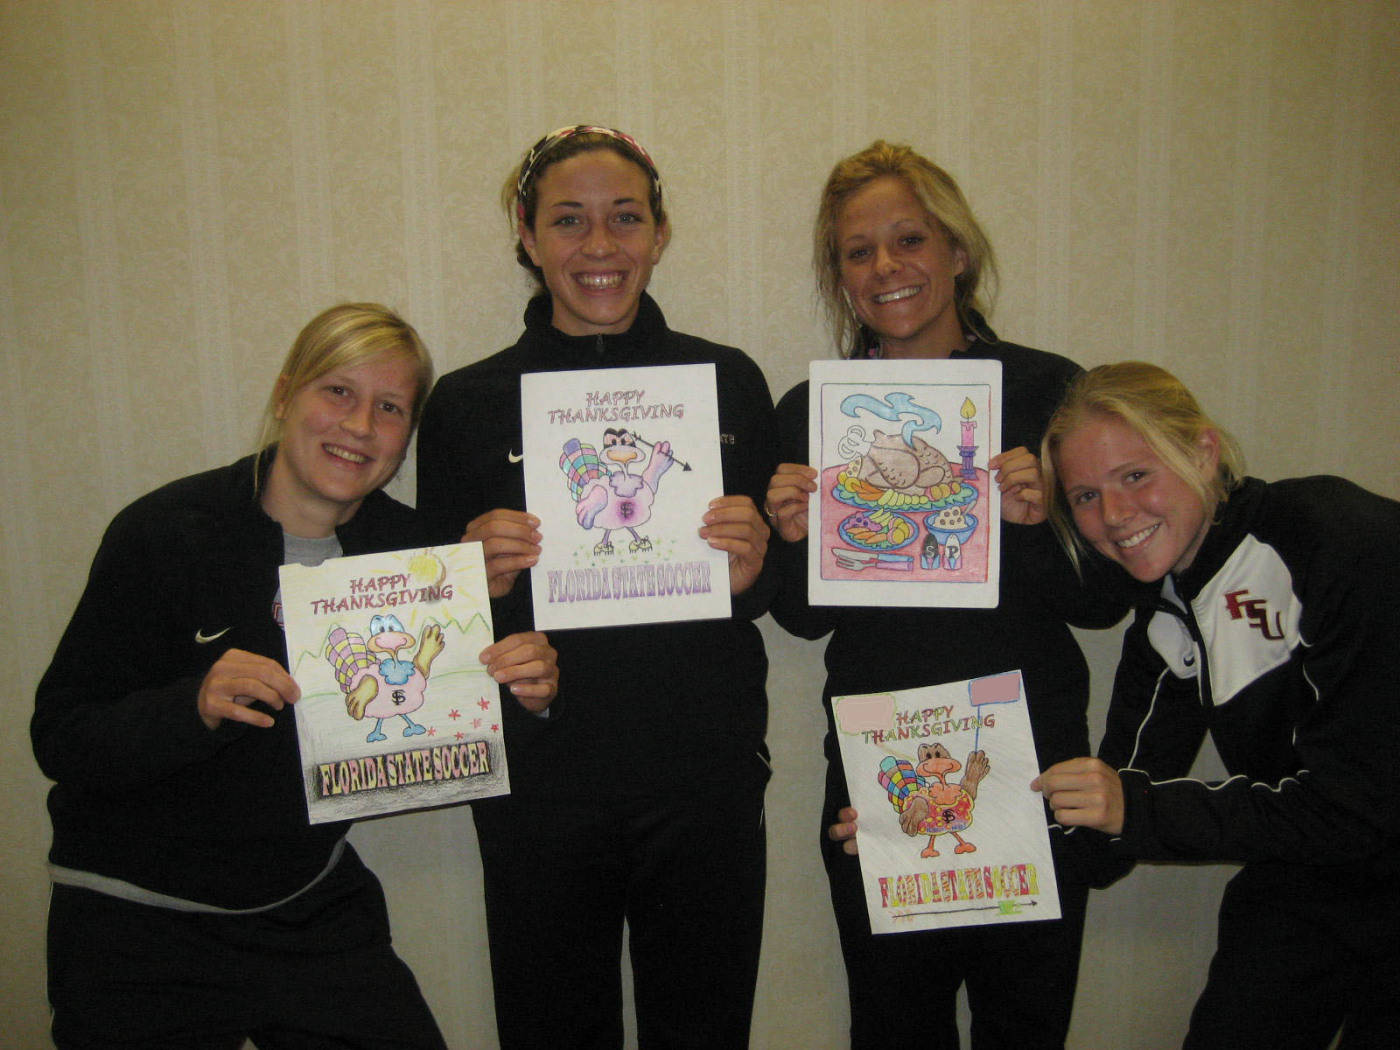 The winners of the Thanksgiving Coloring Contest. (L to R): Sanna Talonen, Erika Sutton, Sarah Wagenfuhr and Lauren Switzer.